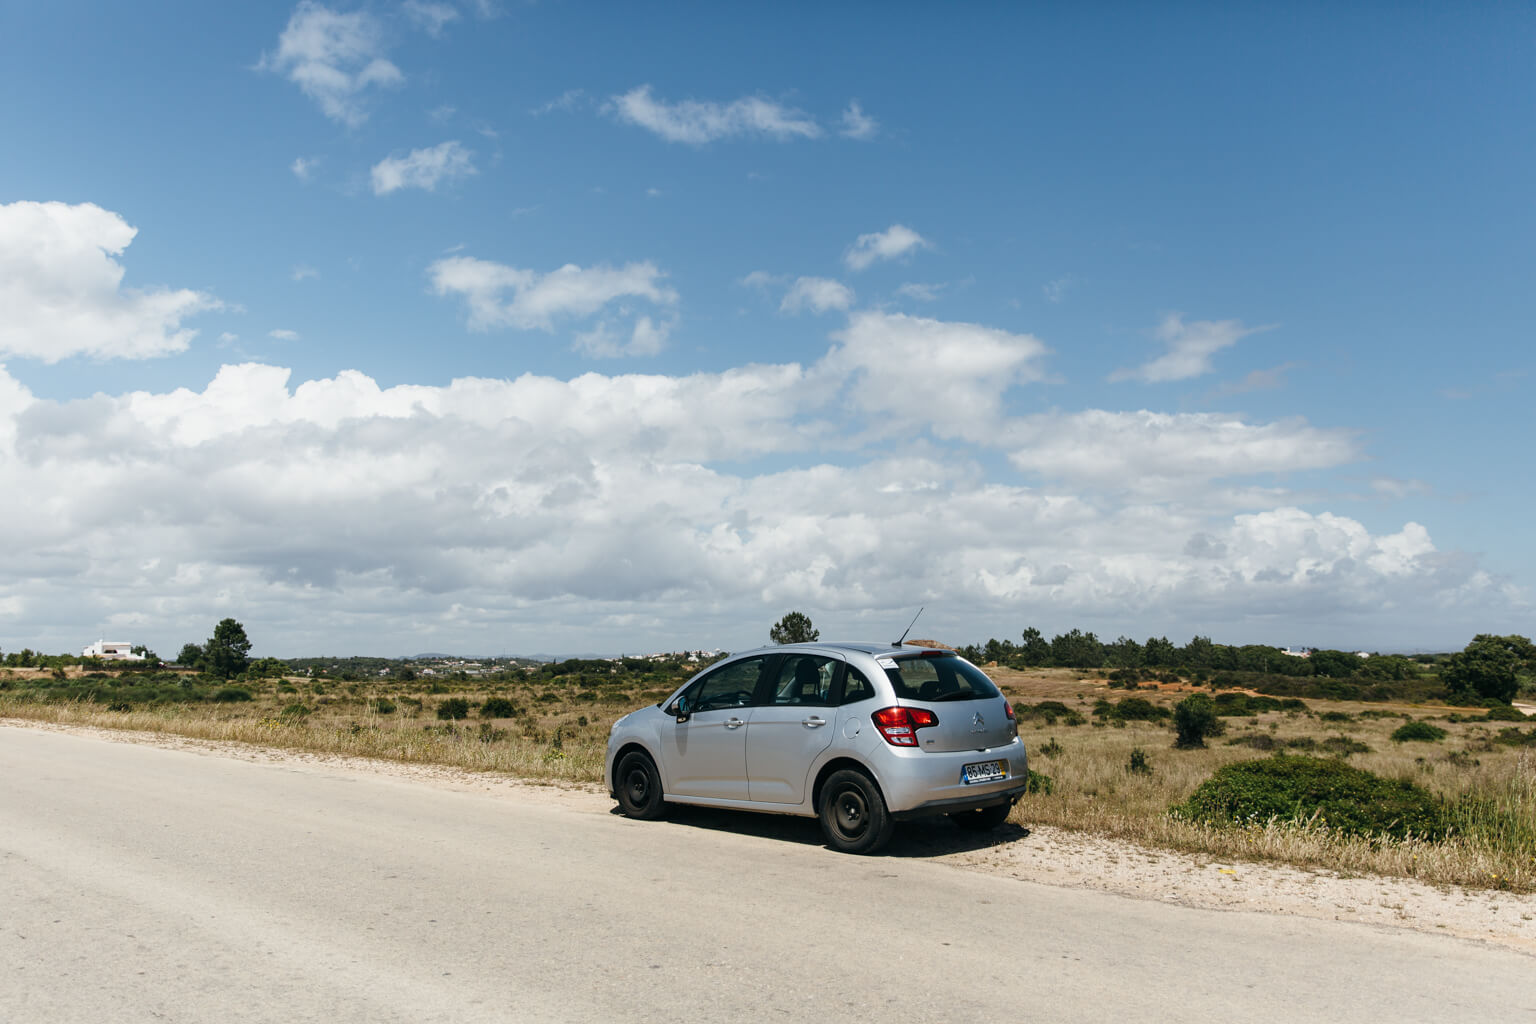 Driving in Algarve, Portugal